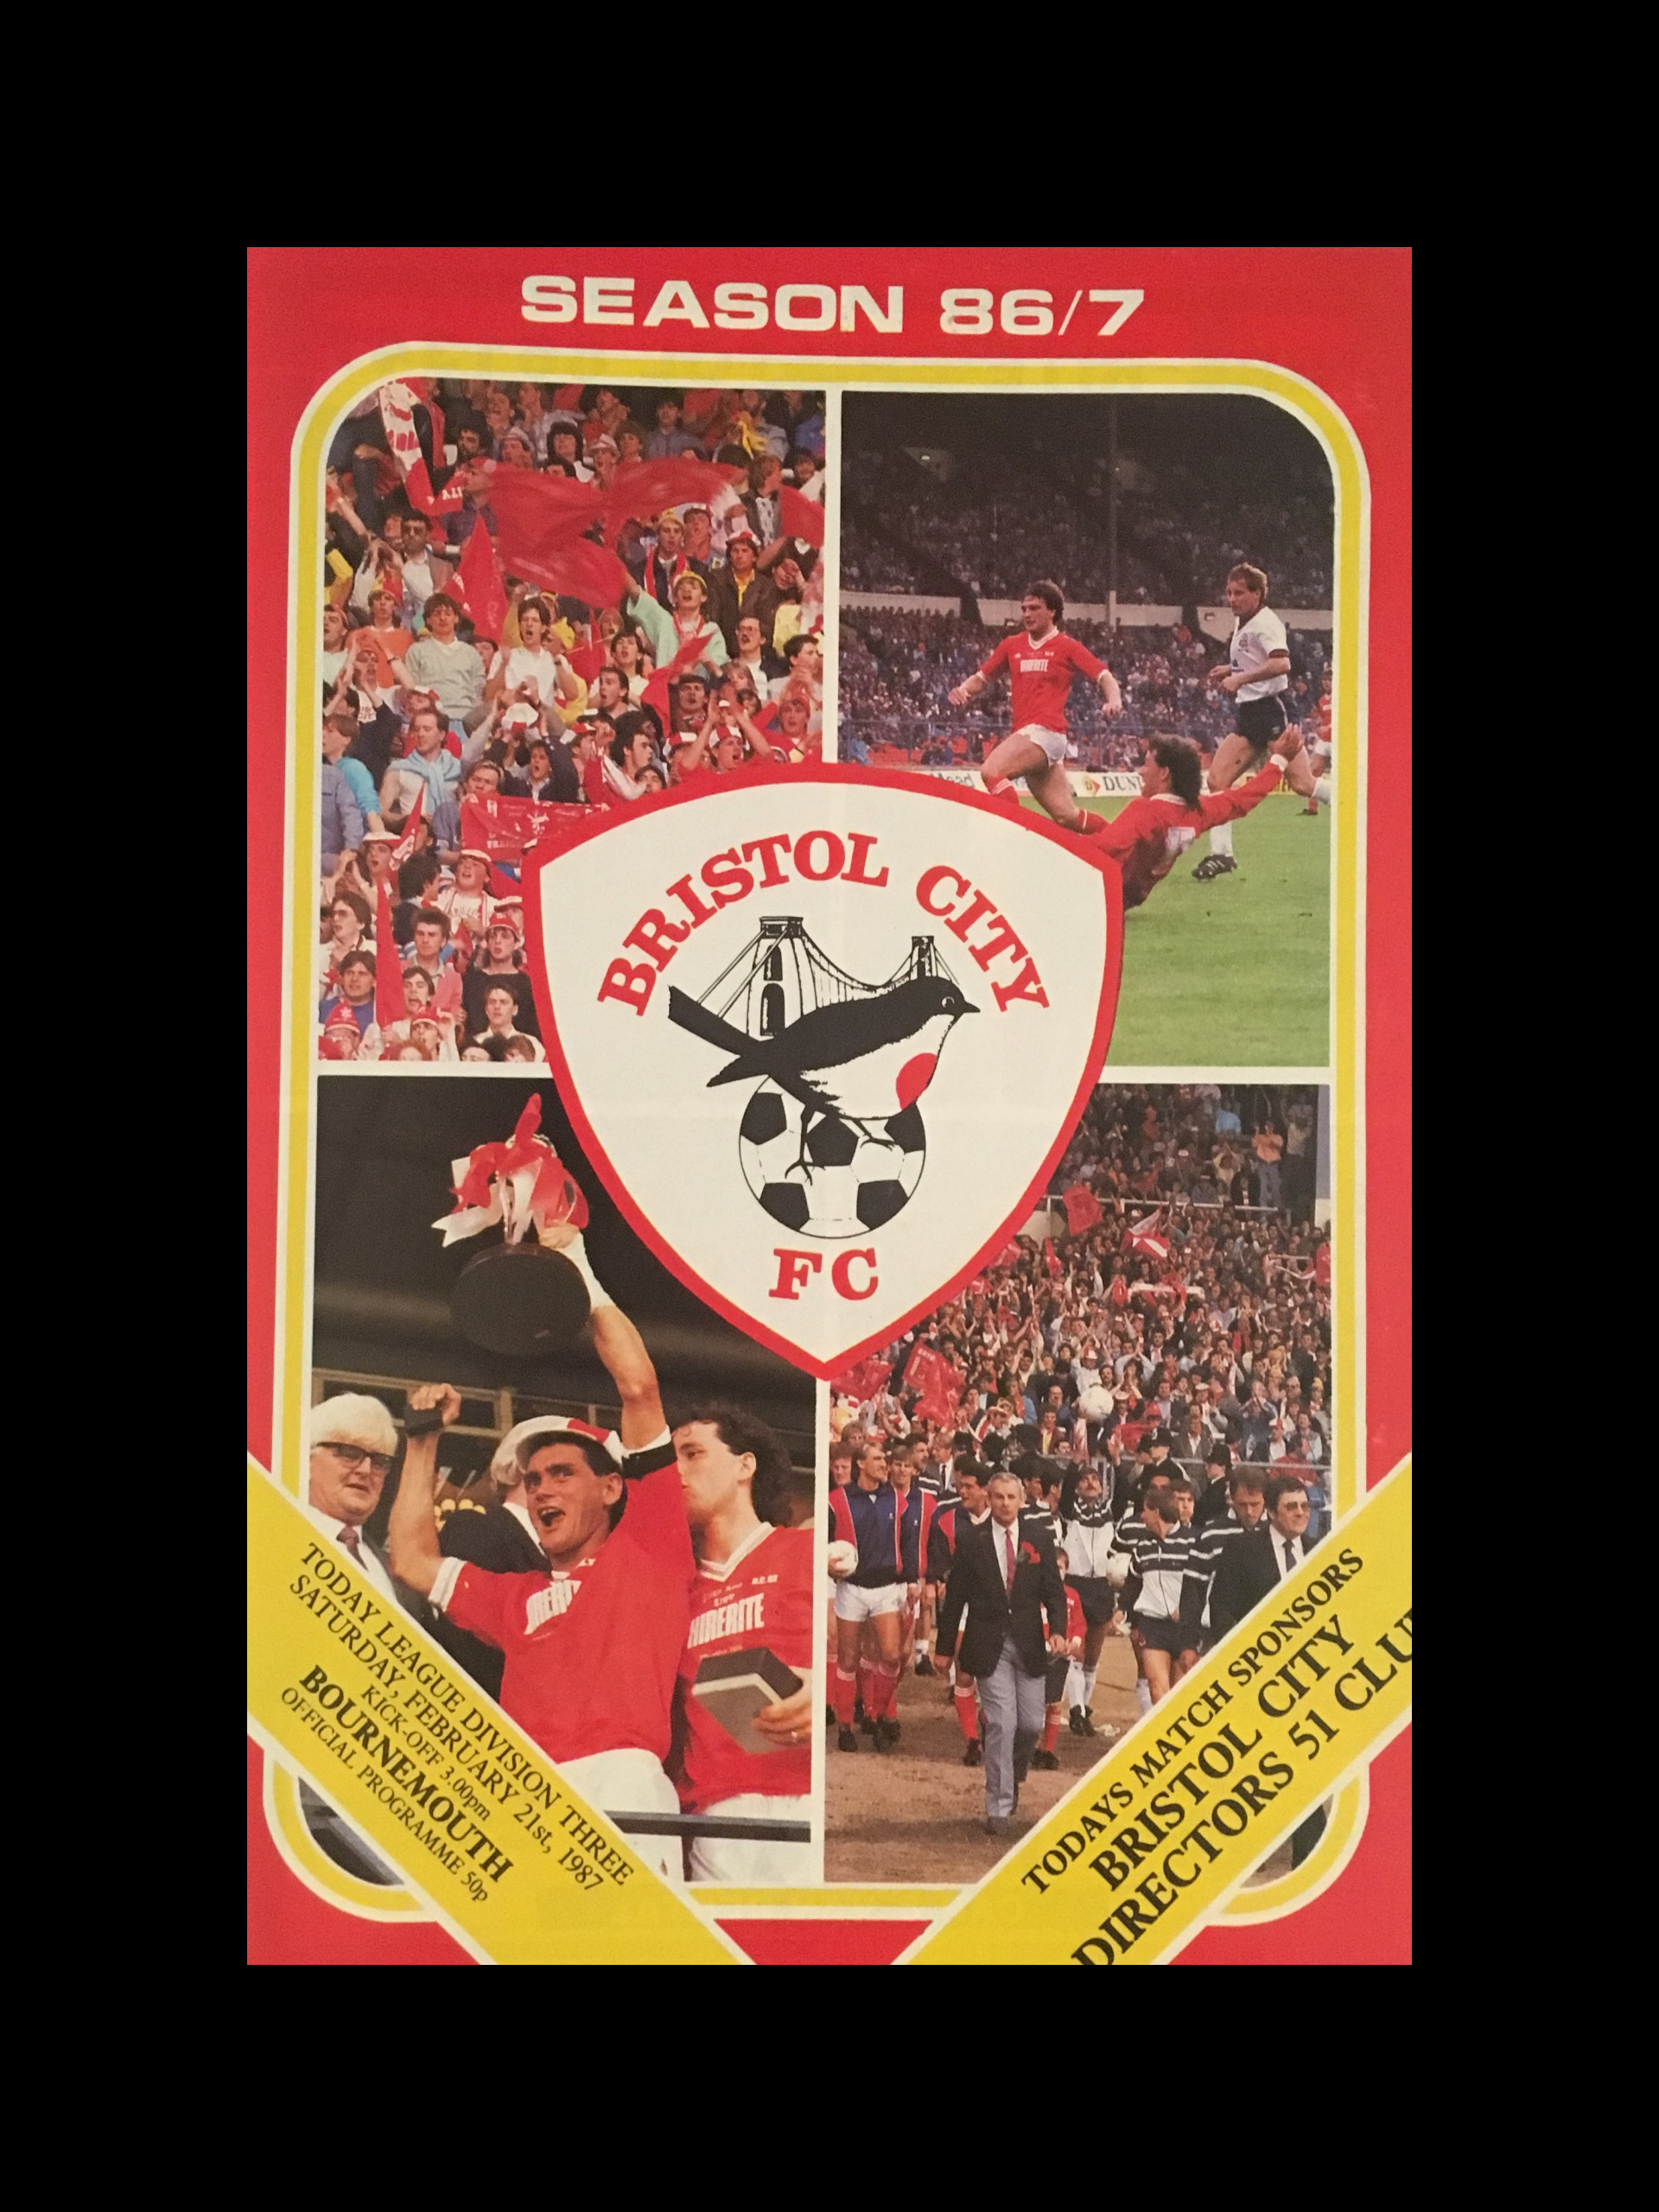 Bristol City v AFC Bournemouth 21-02-87 Programme